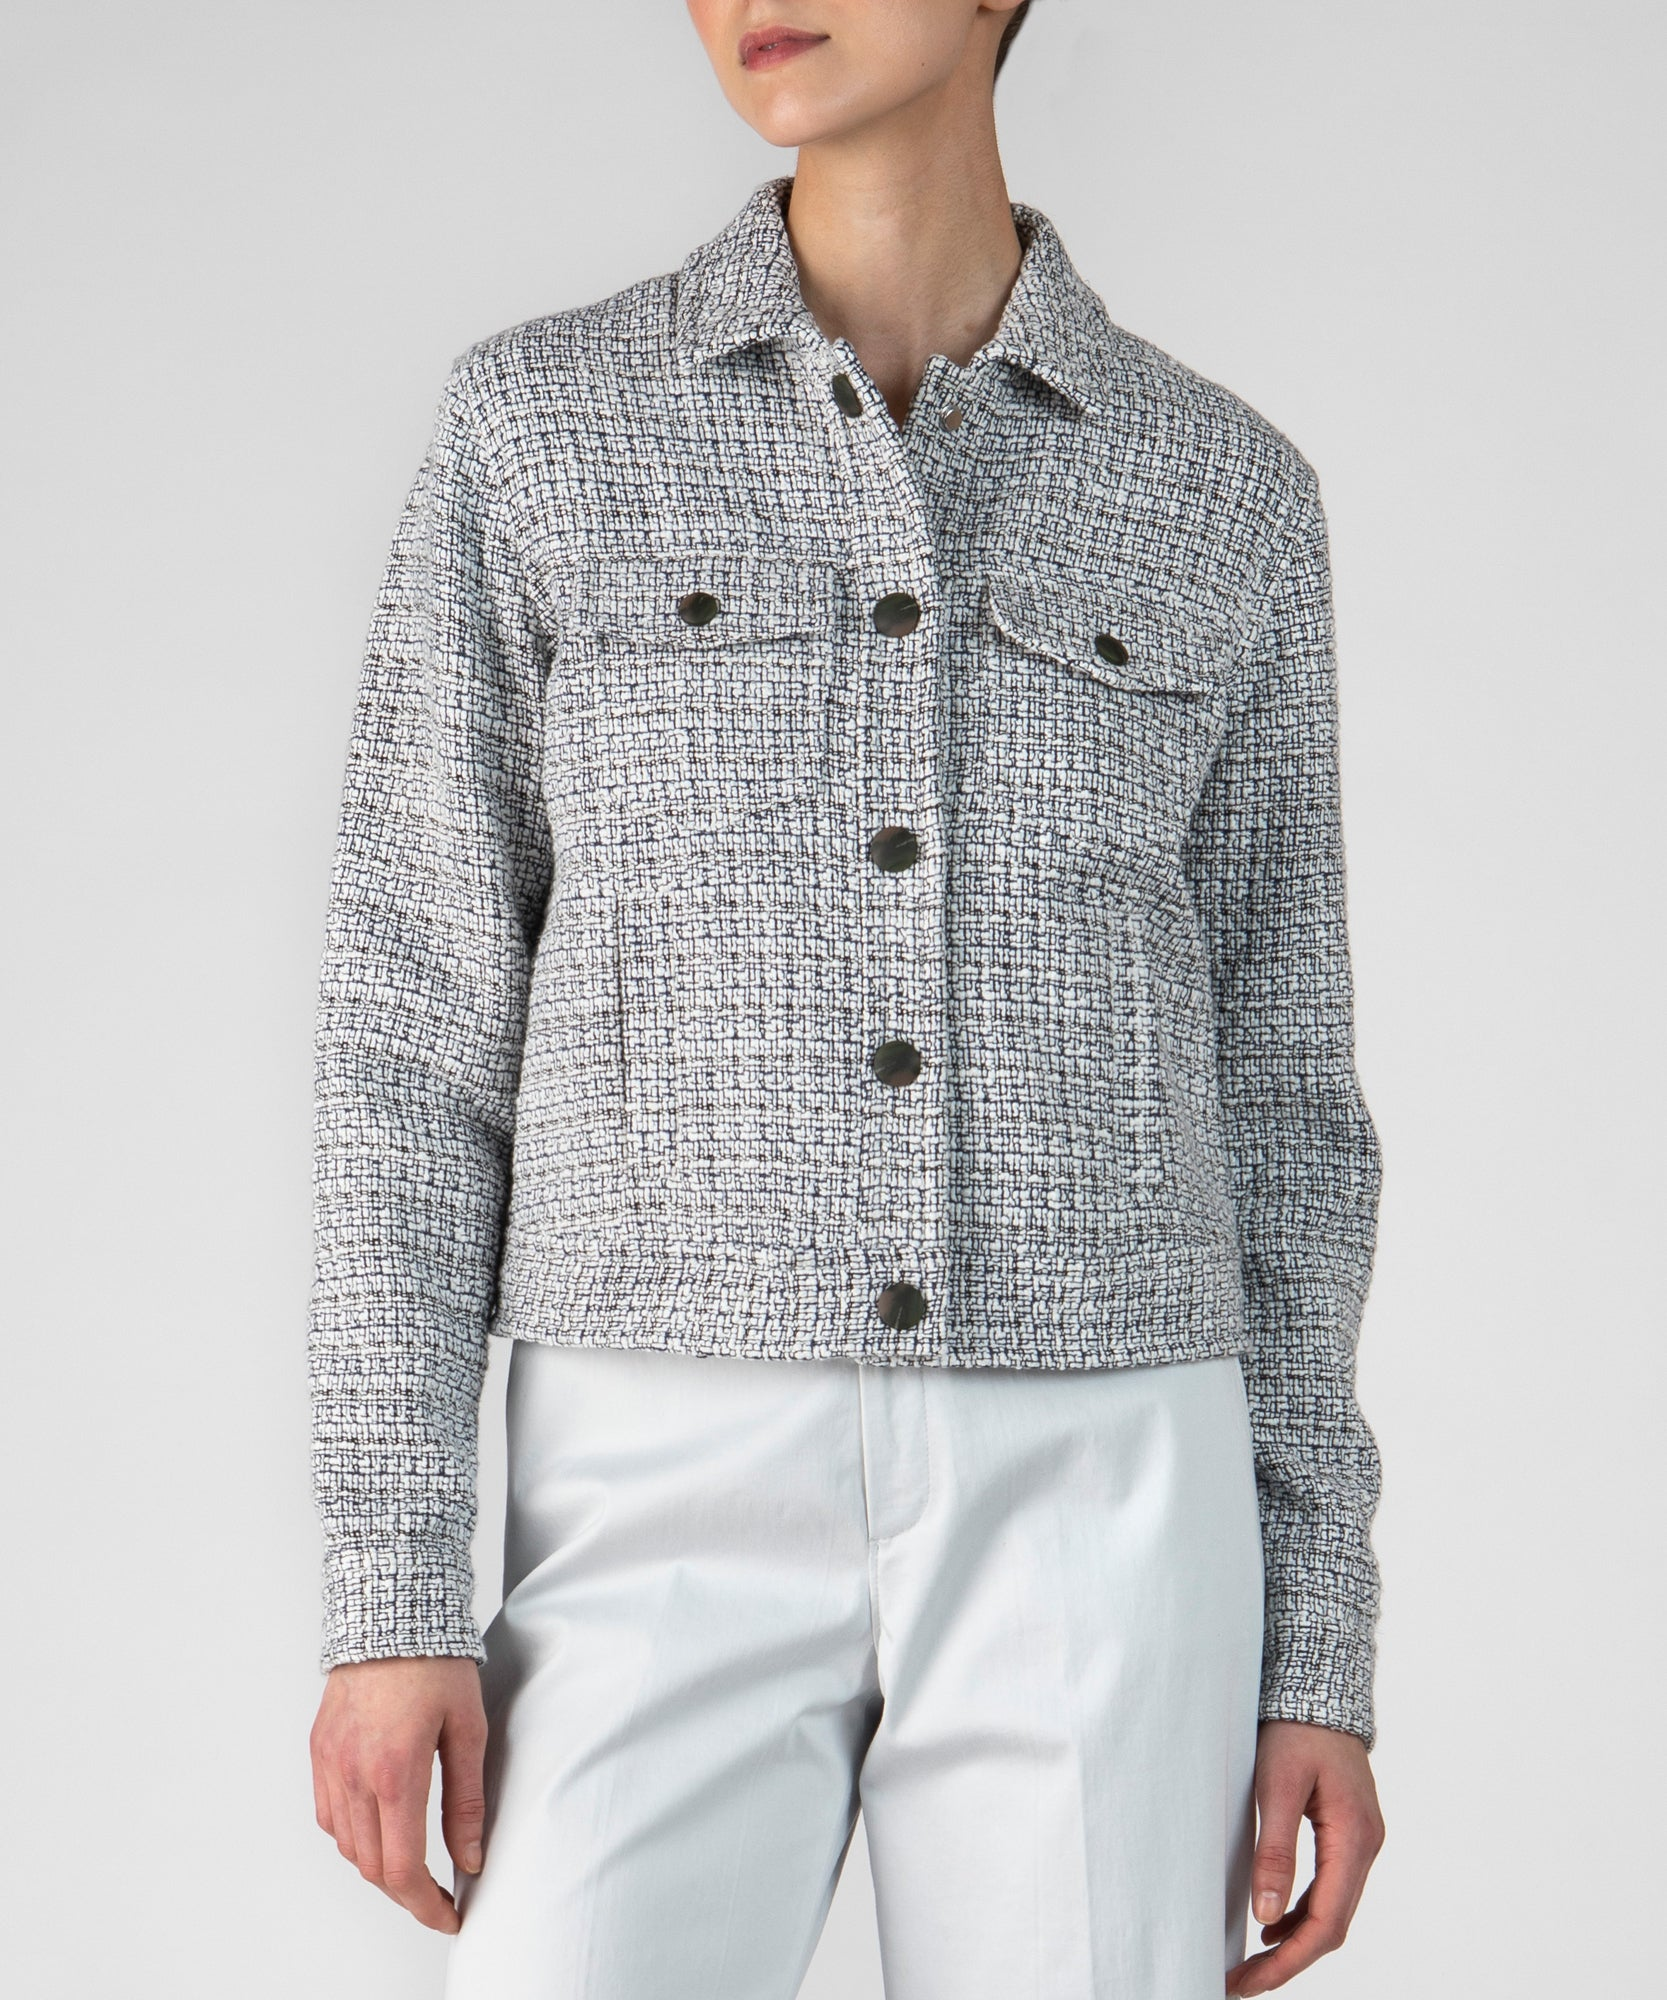 Chalk Combo Tweed Cropped Jean Jacket - Women's Casual Jacket by ATM Anthony Thomas Melillo